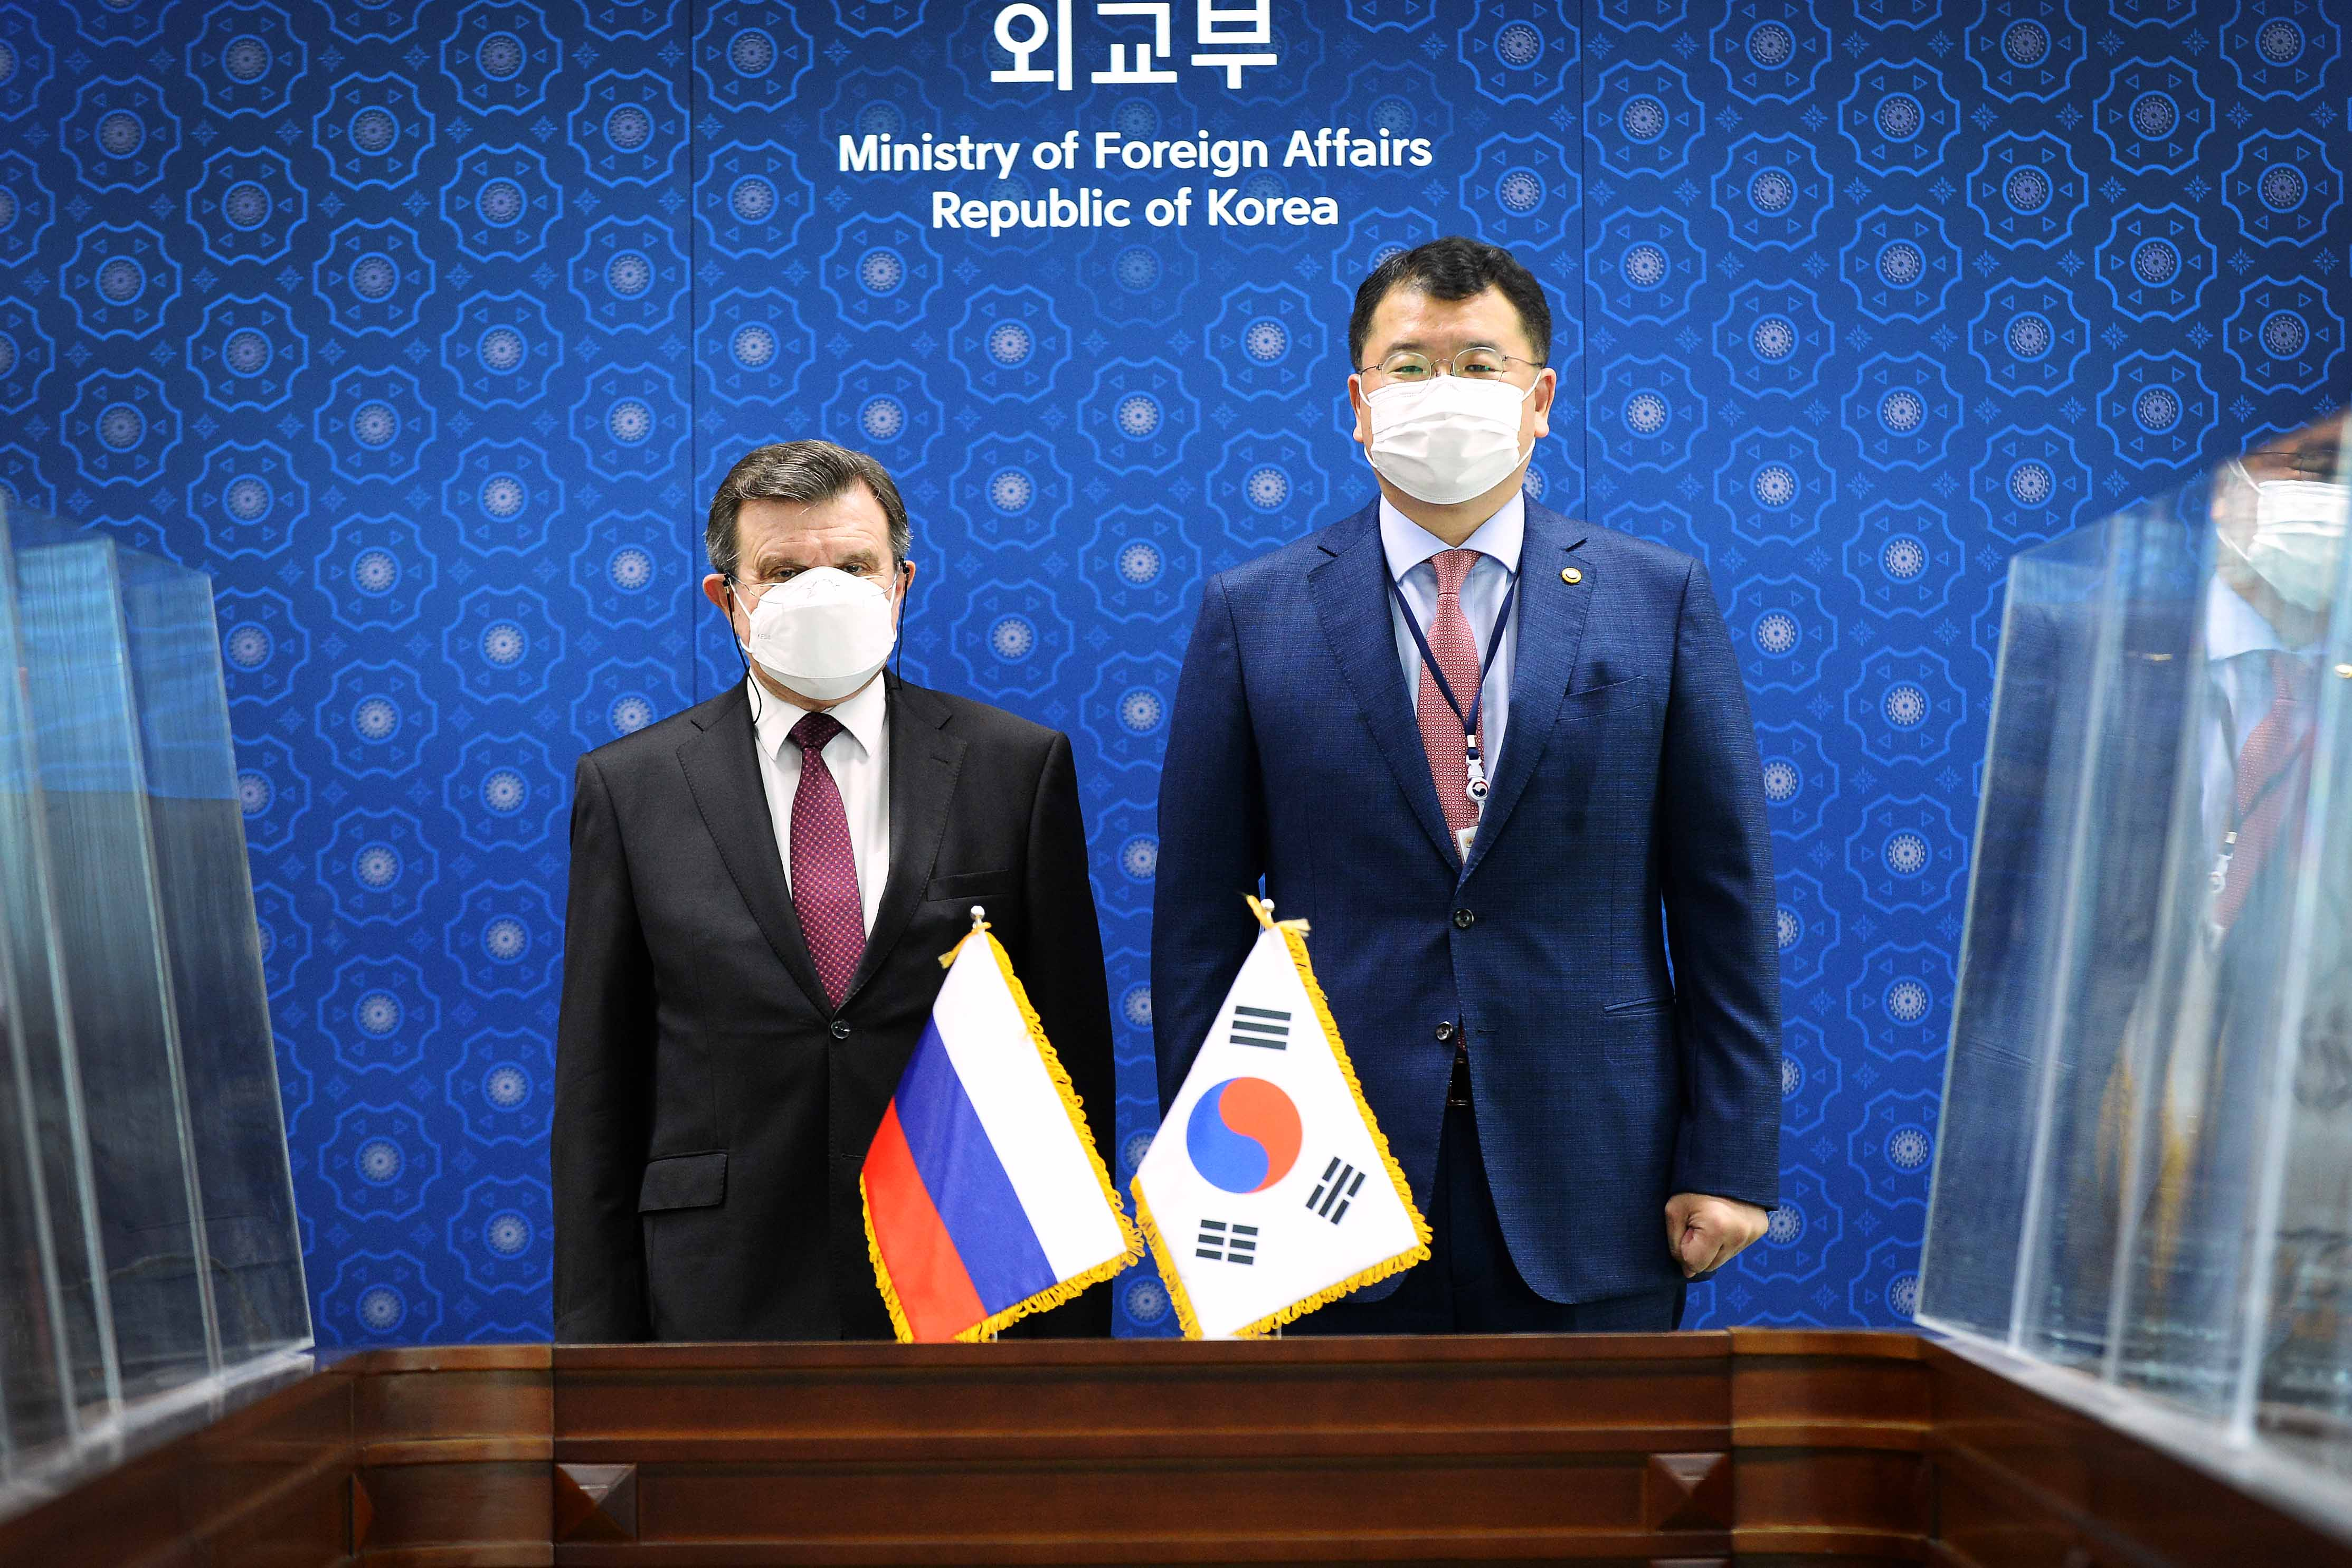 Vice Minister of Foreign Affairs Choi Meets with Russian Ambassador to ROK